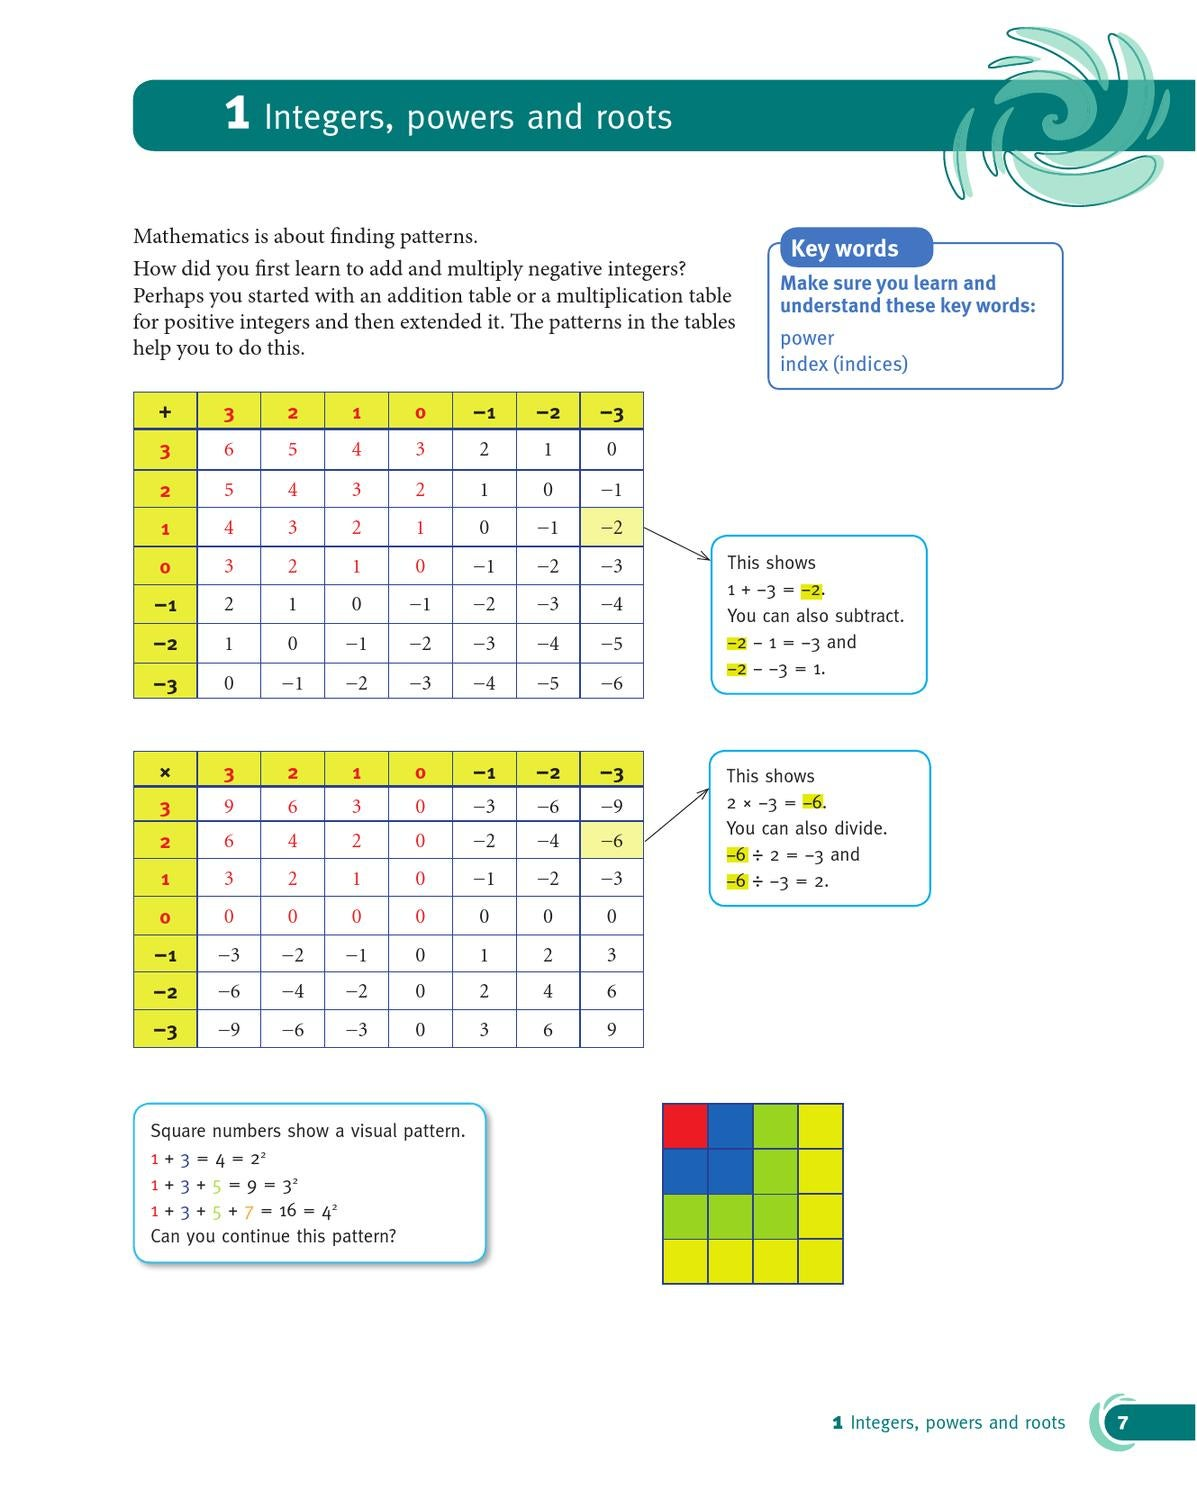 Extended multiplication table gallery periodic table images cambridge checkpoint mathematics coursebook 9 by cambridge cambridge checkpoint mathematics coursebook 9 by cambridge university press gamestrikefo Image collections